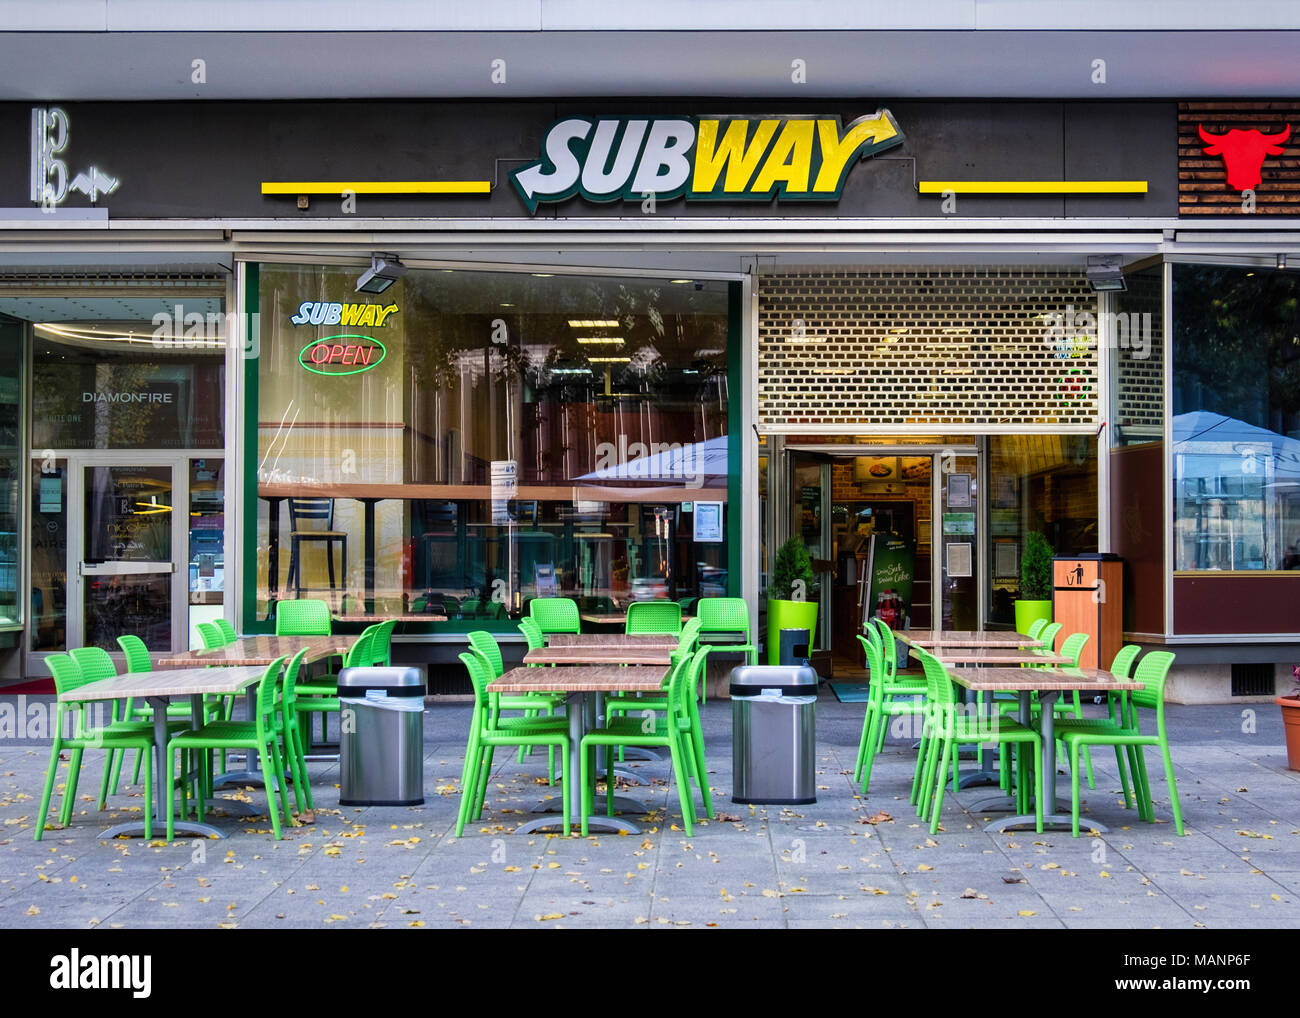 subway food stock photos subway food stock images alamy. Black Bedroom Furniture Sets. Home Design Ideas